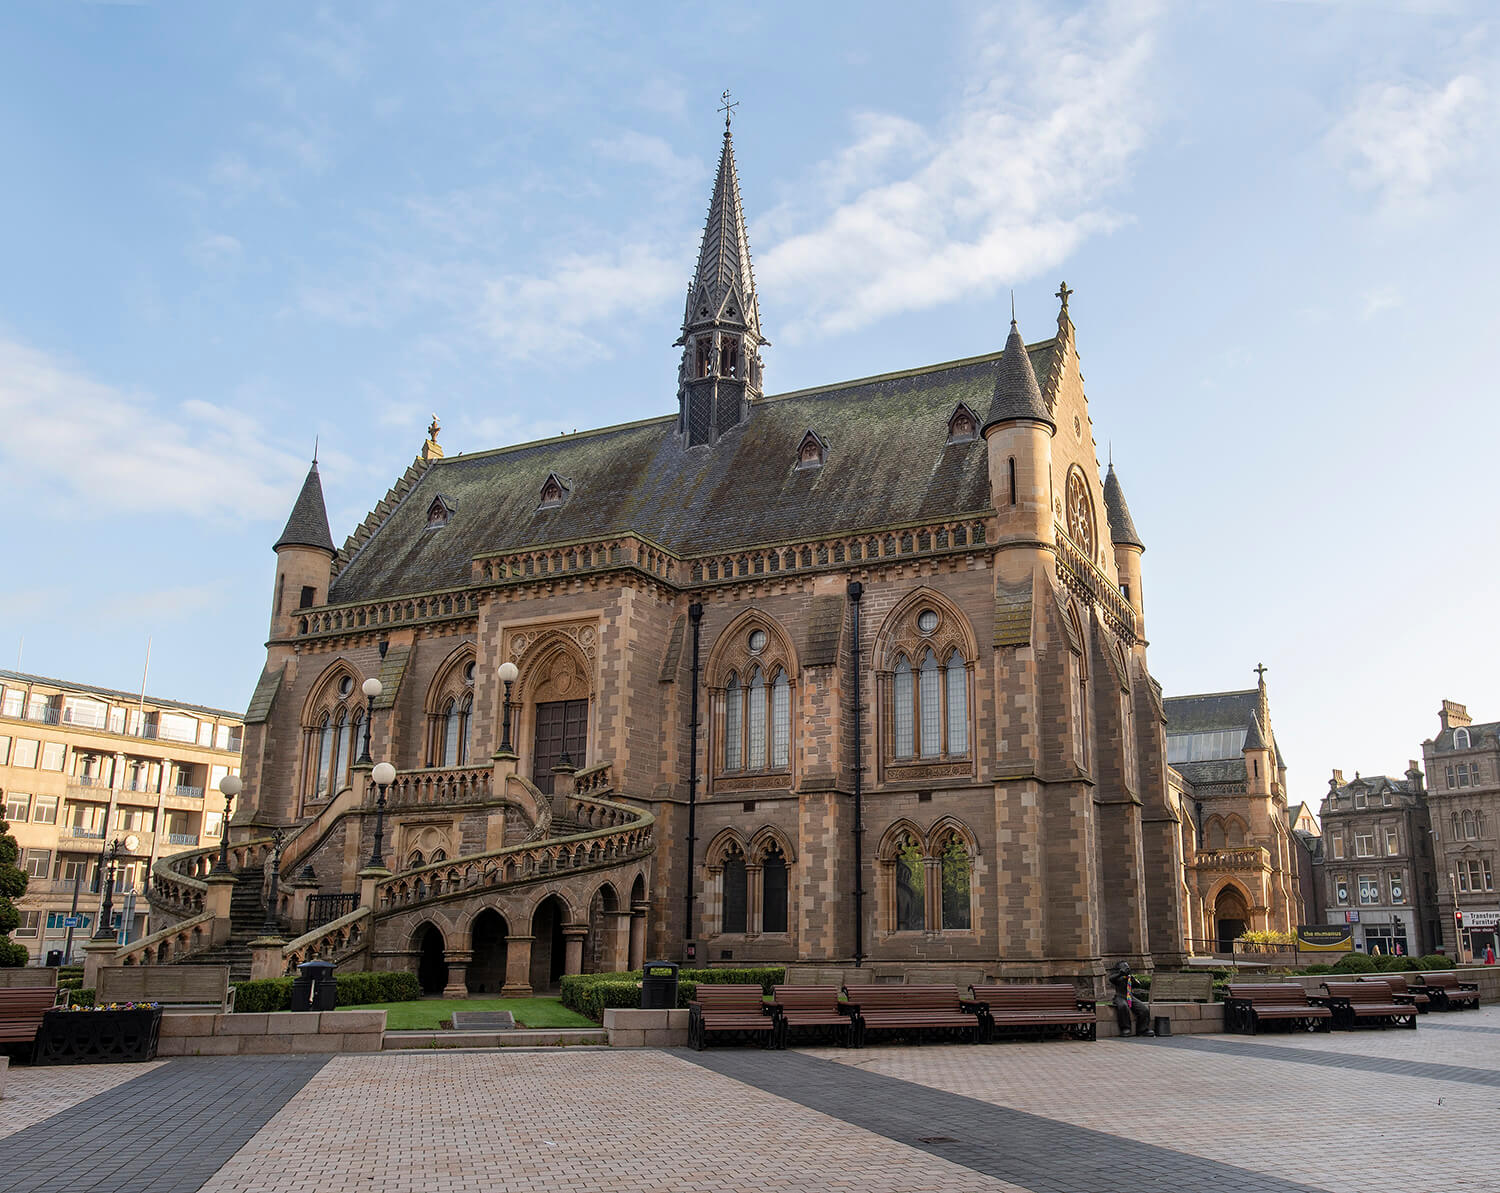 The McManus; Dundee's Art Gallery & Museum